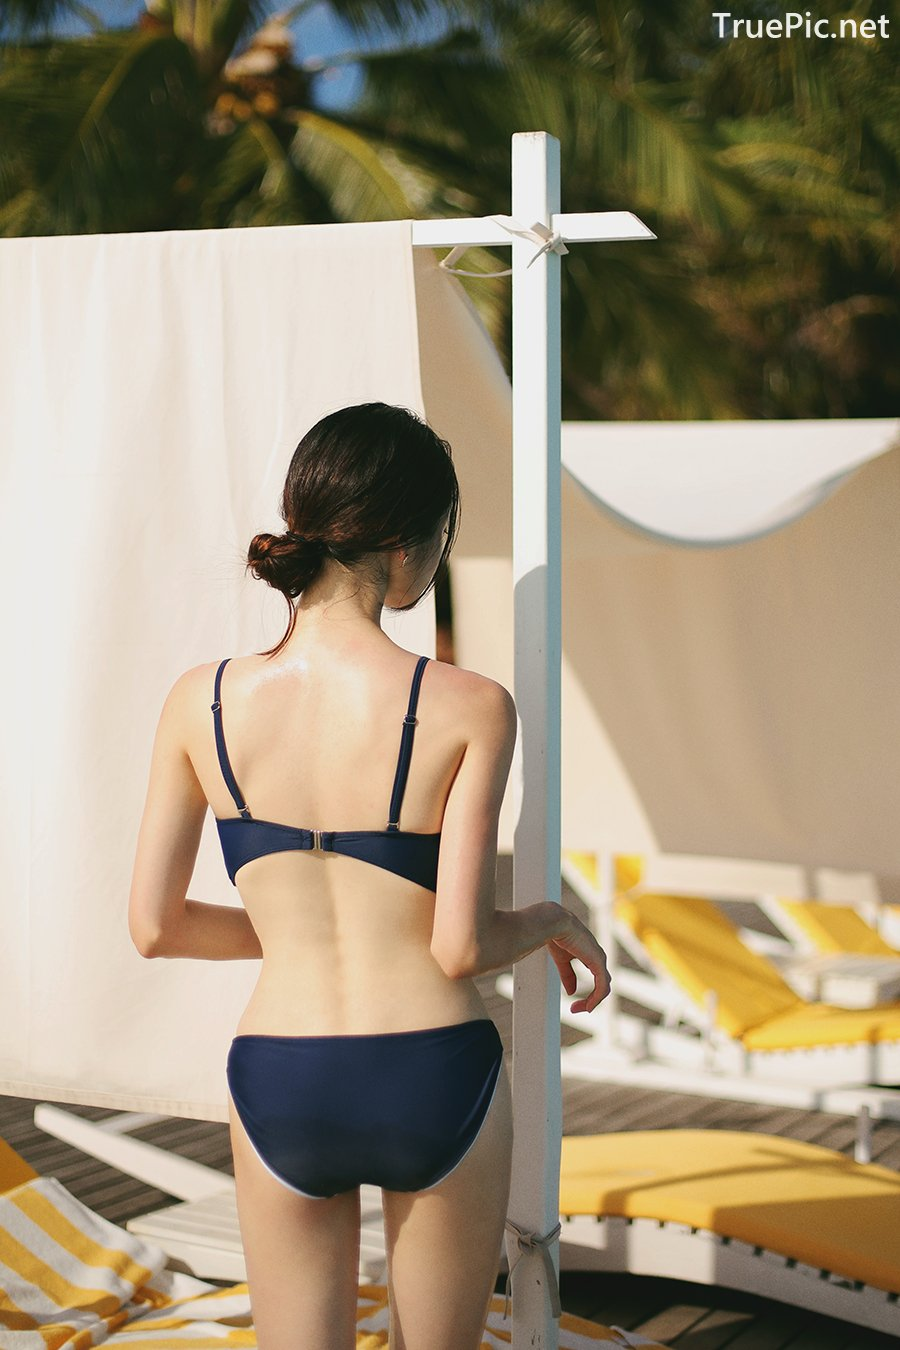 Image Korean Fashion Model - Jeong Hee - Bikini That Stained My Heart - TruePic.net - Picture-7